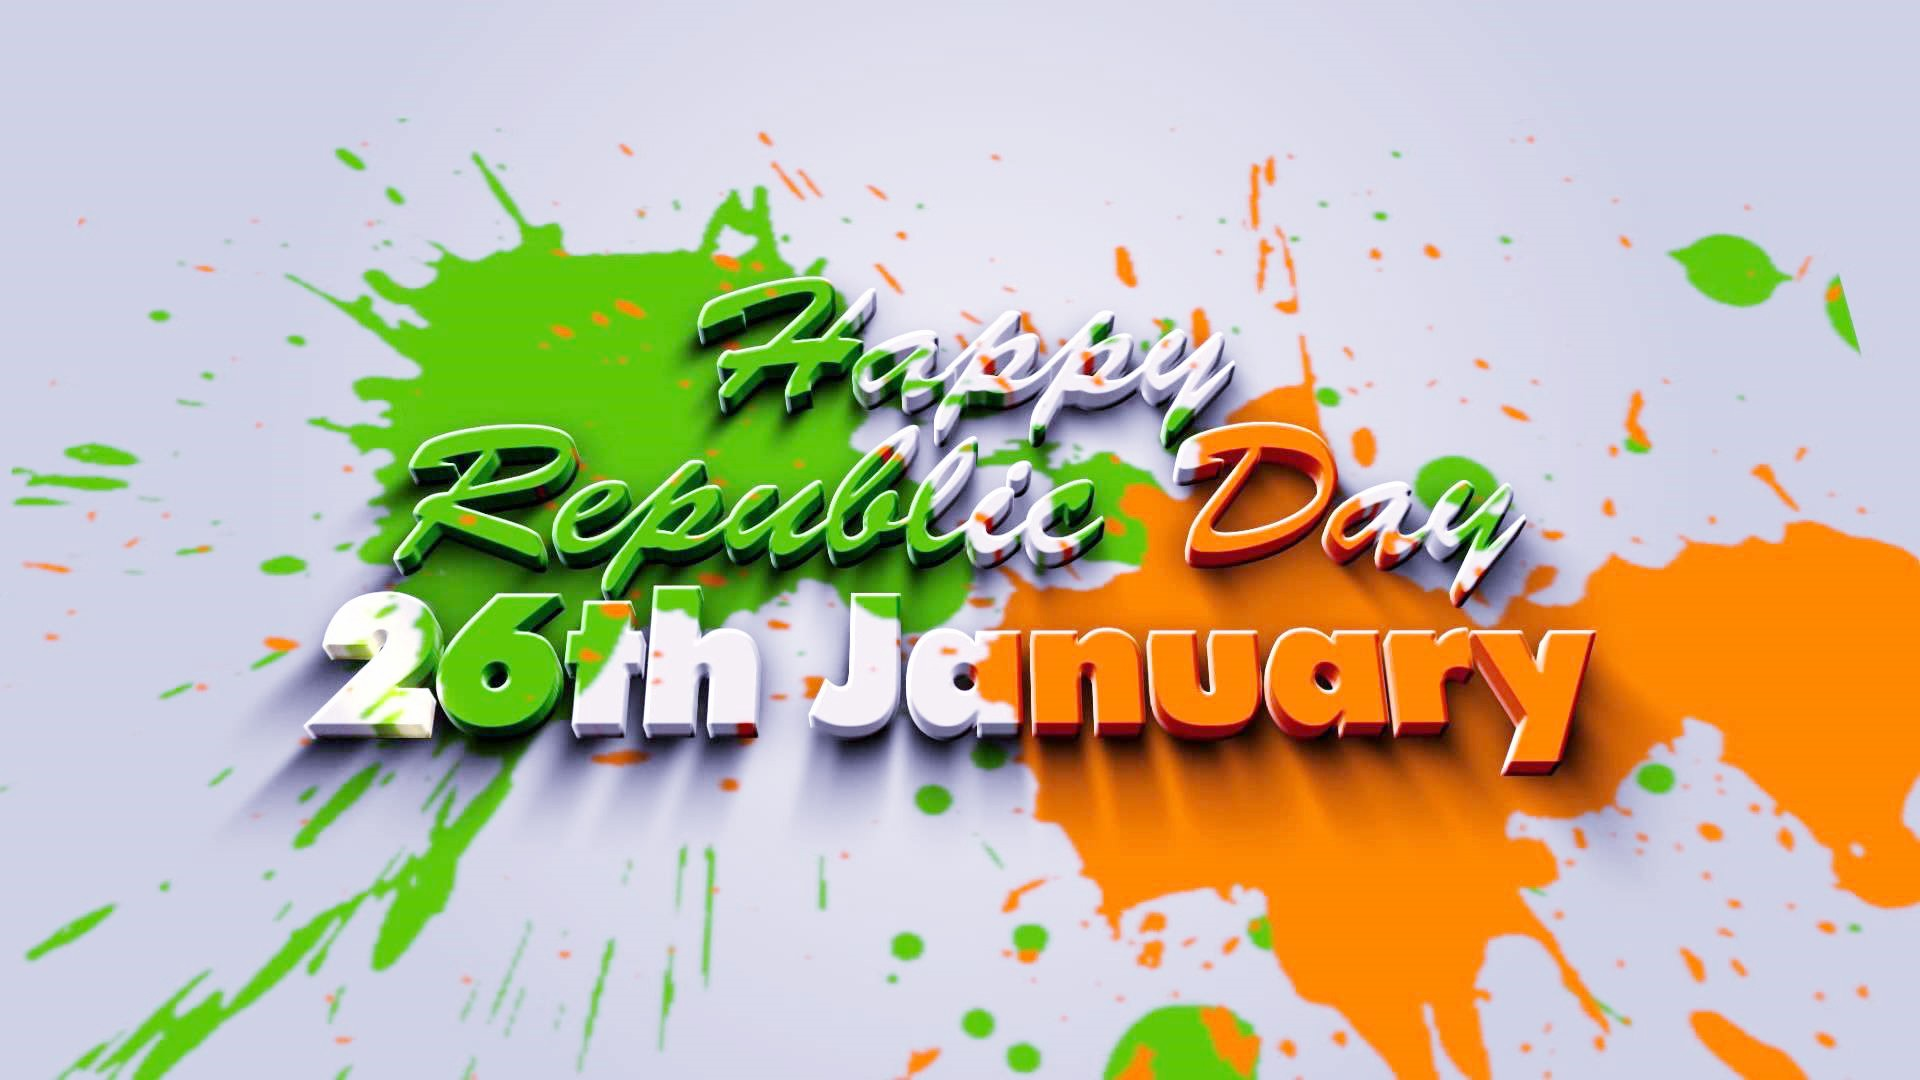 Republic Day images with high quality graphics Download